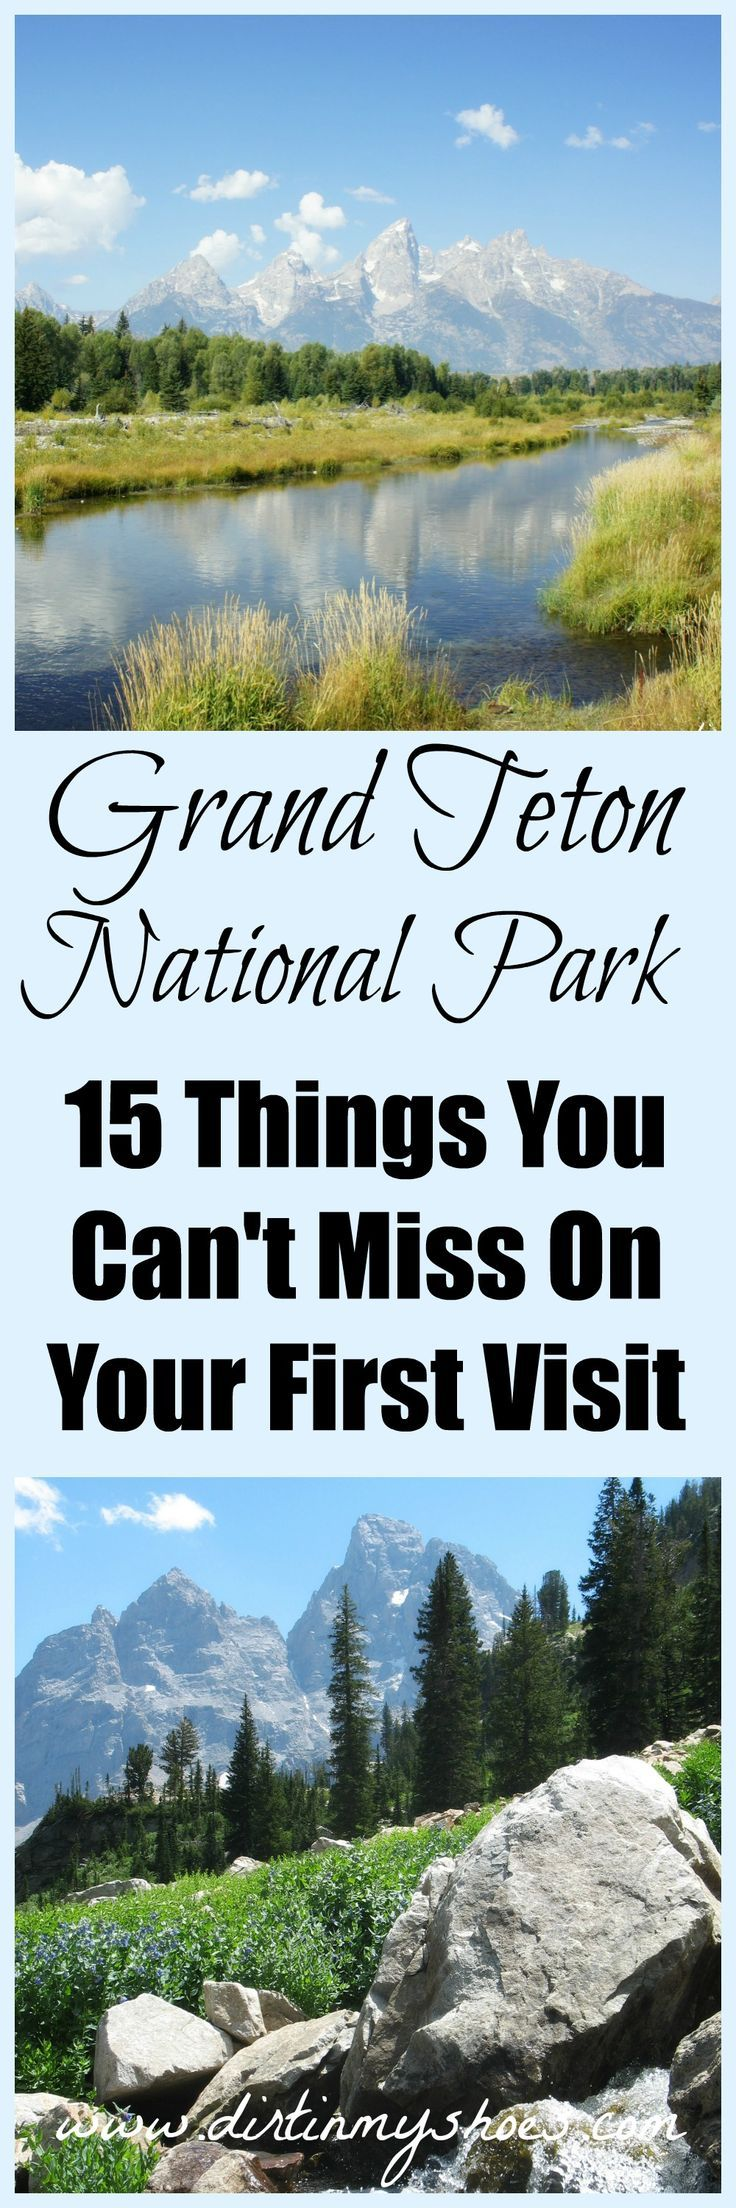 Discover 17 best ideas about American National Parks on Pinterest ...